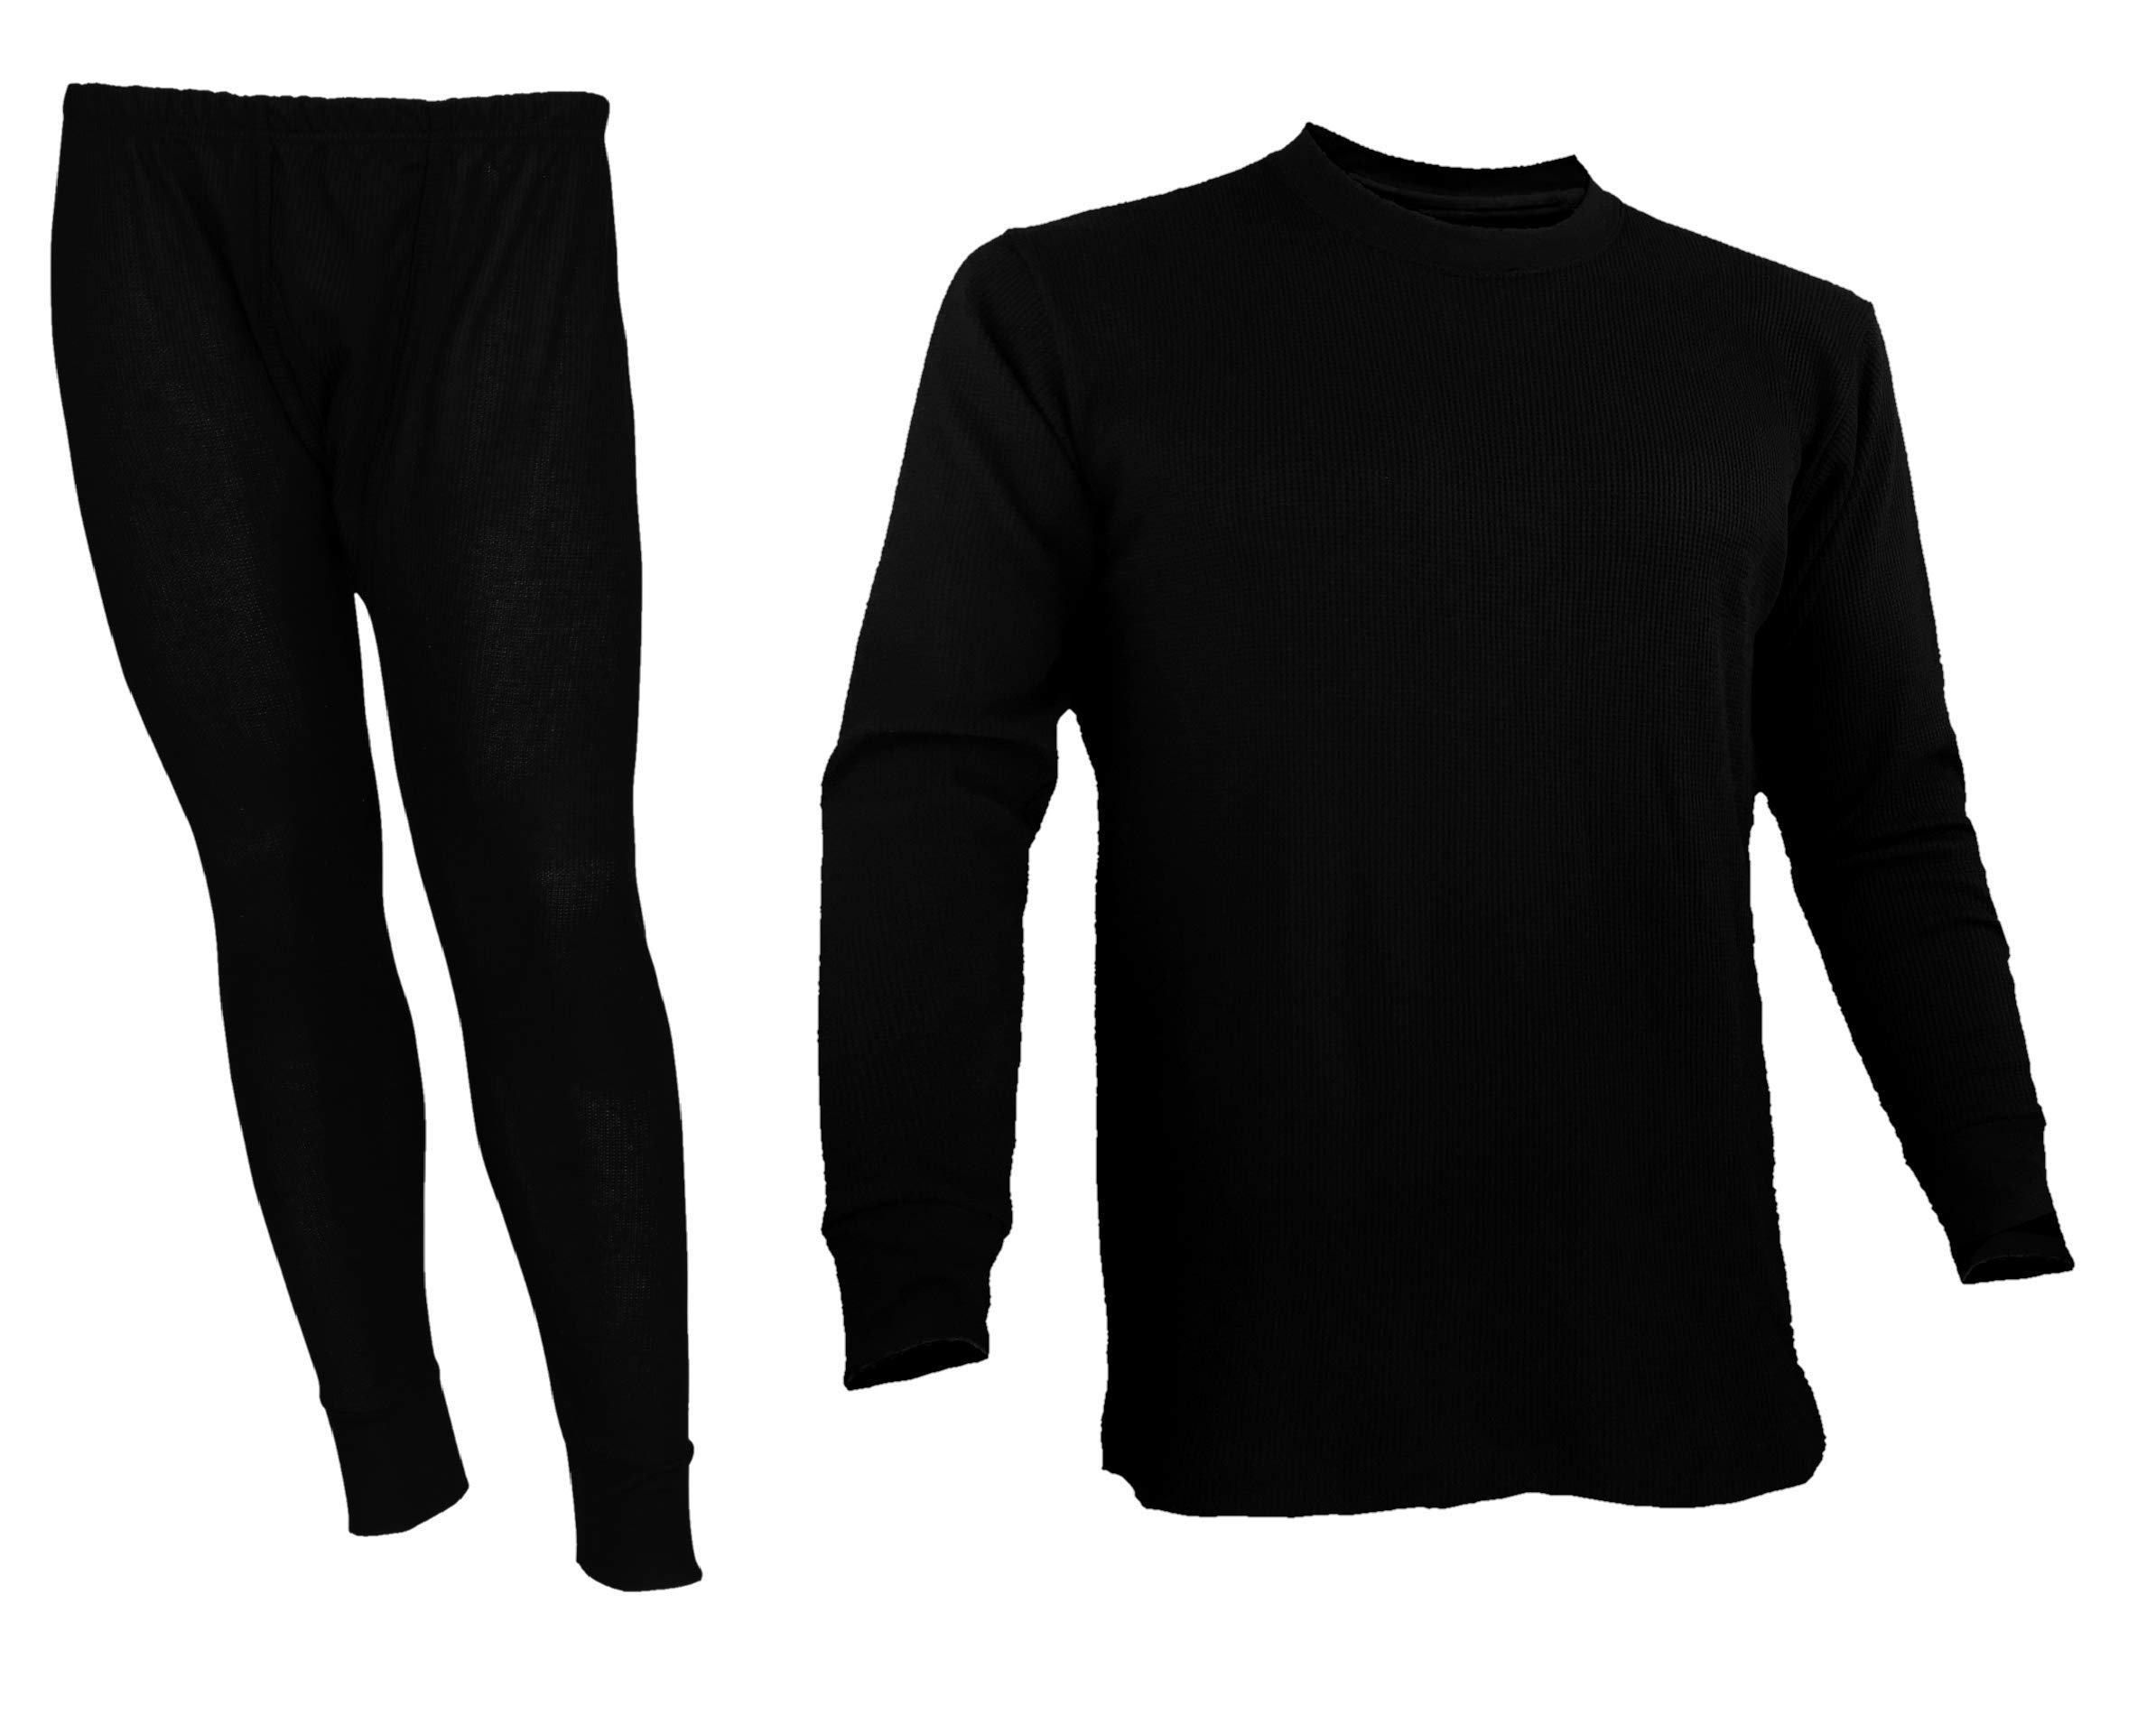 Styllion -100% Polyester Thermal Underwear for Men TS200